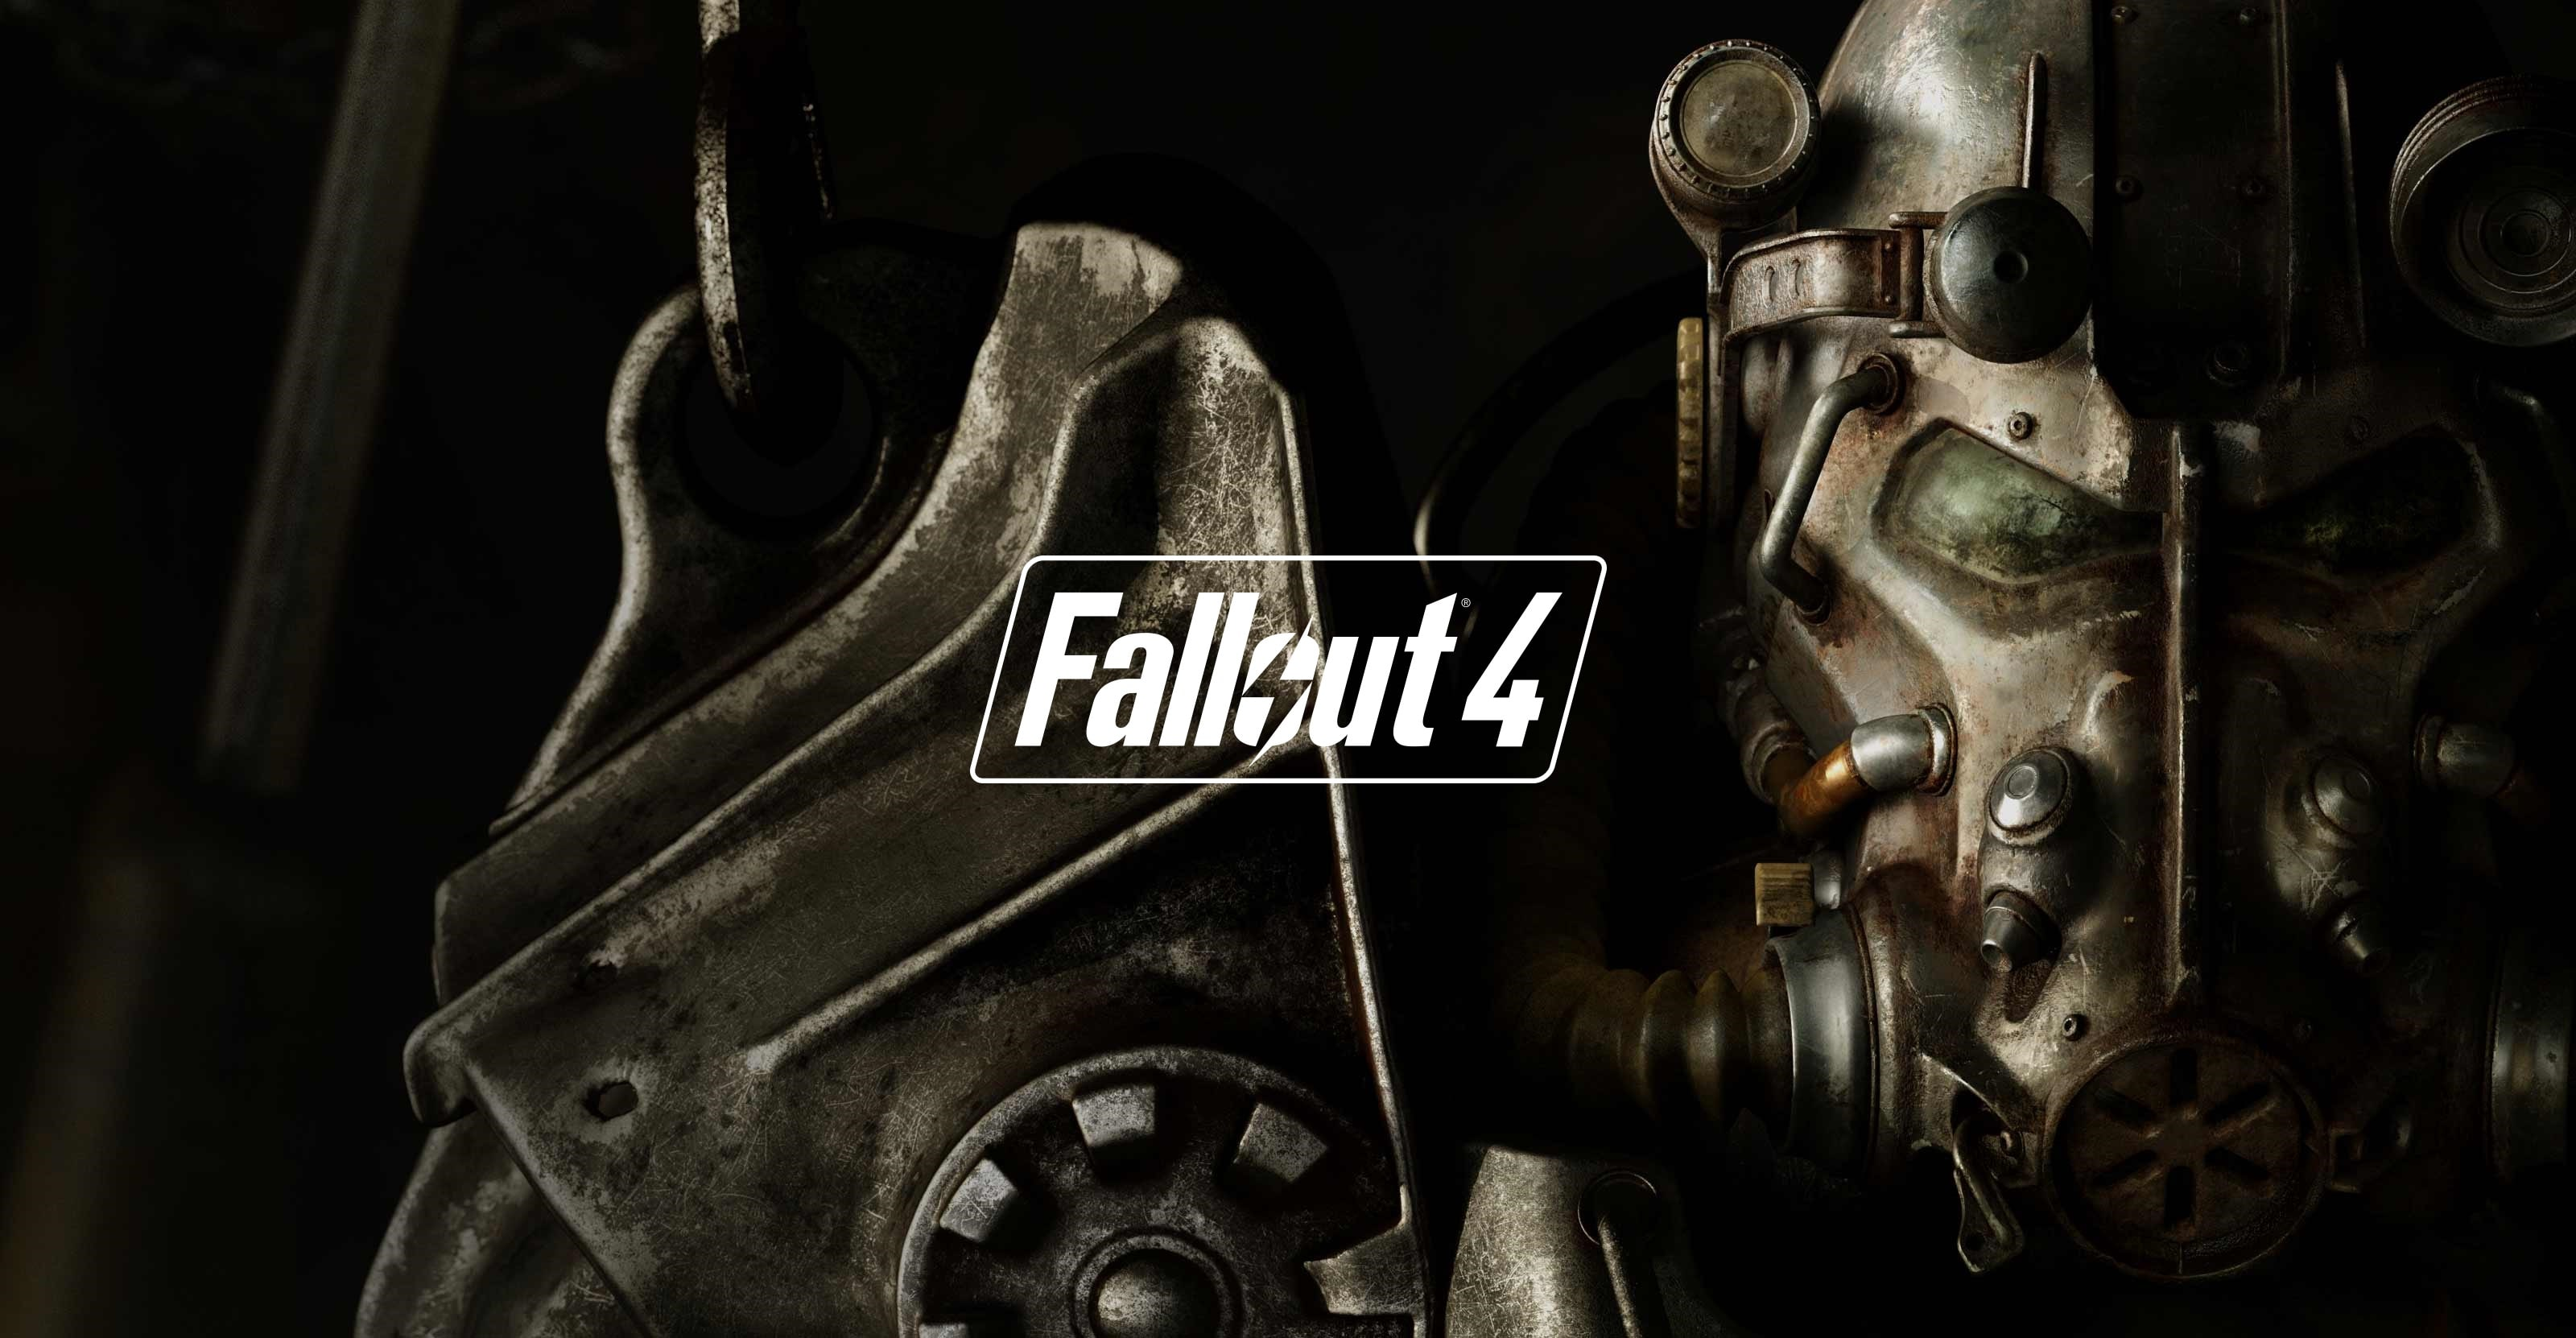 Fallout 4 Pictures